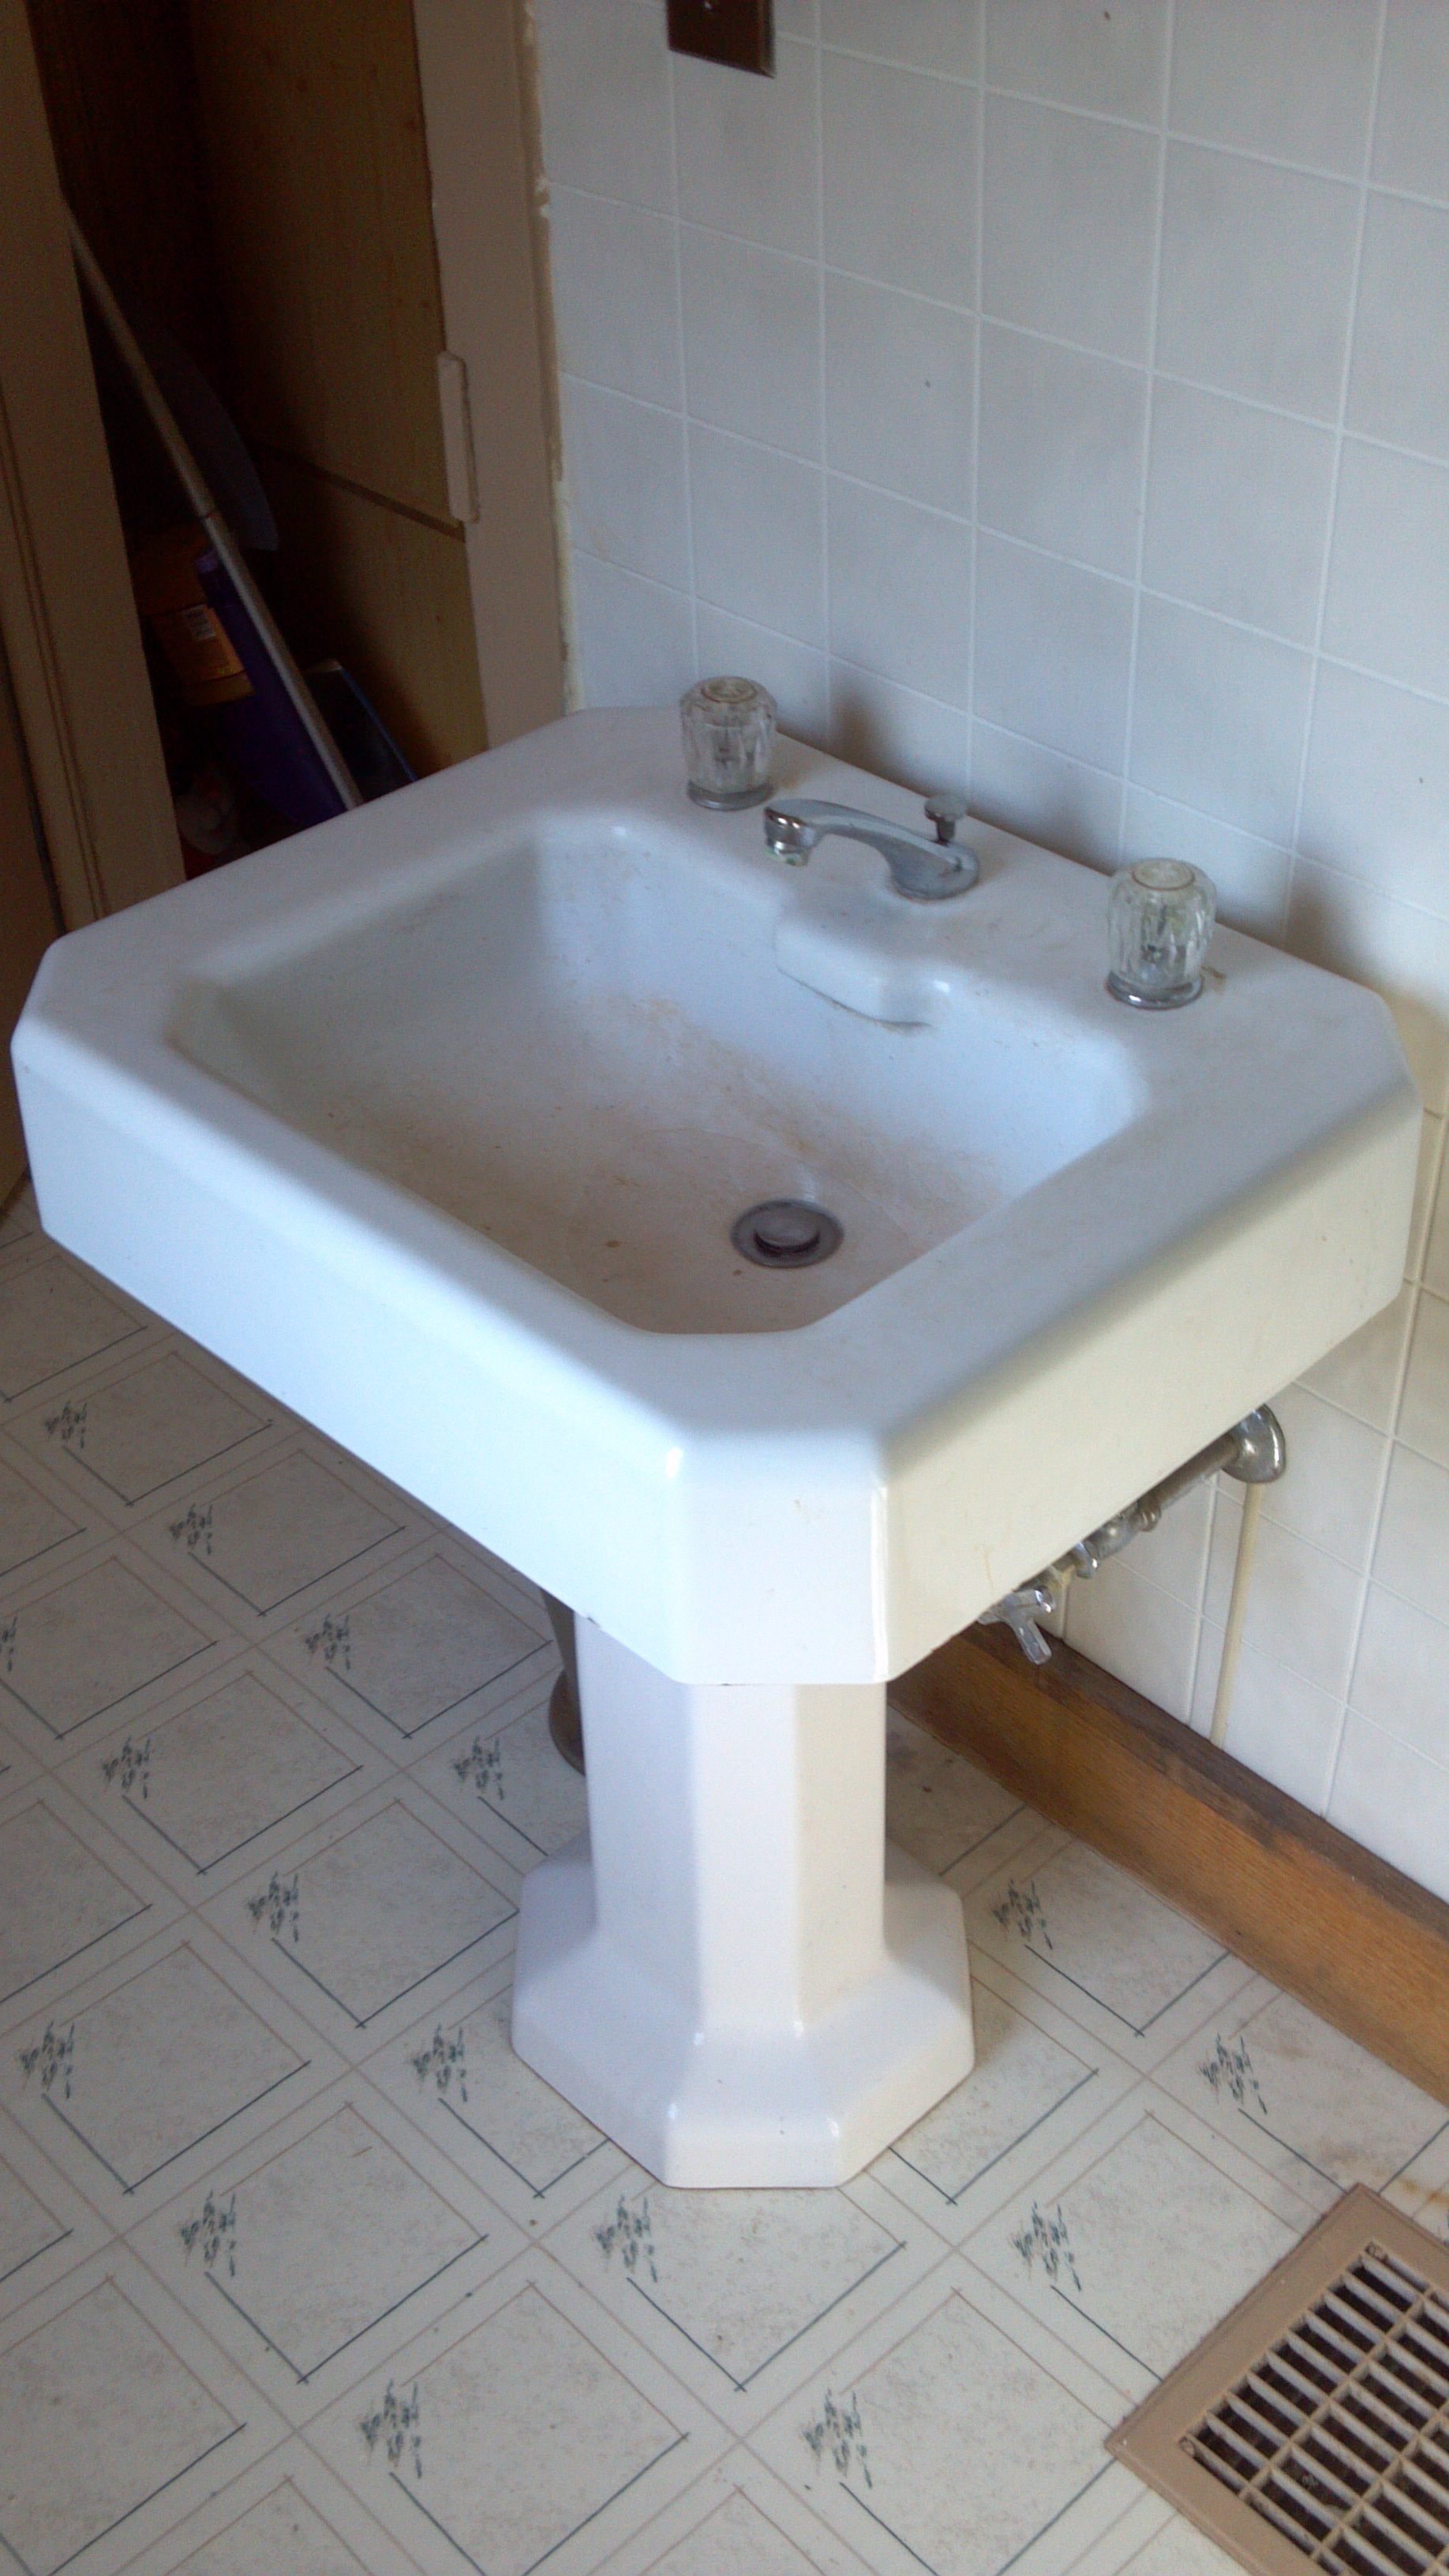 have a vintage Kohler pedestal sink dating from 1933 0r 1936,